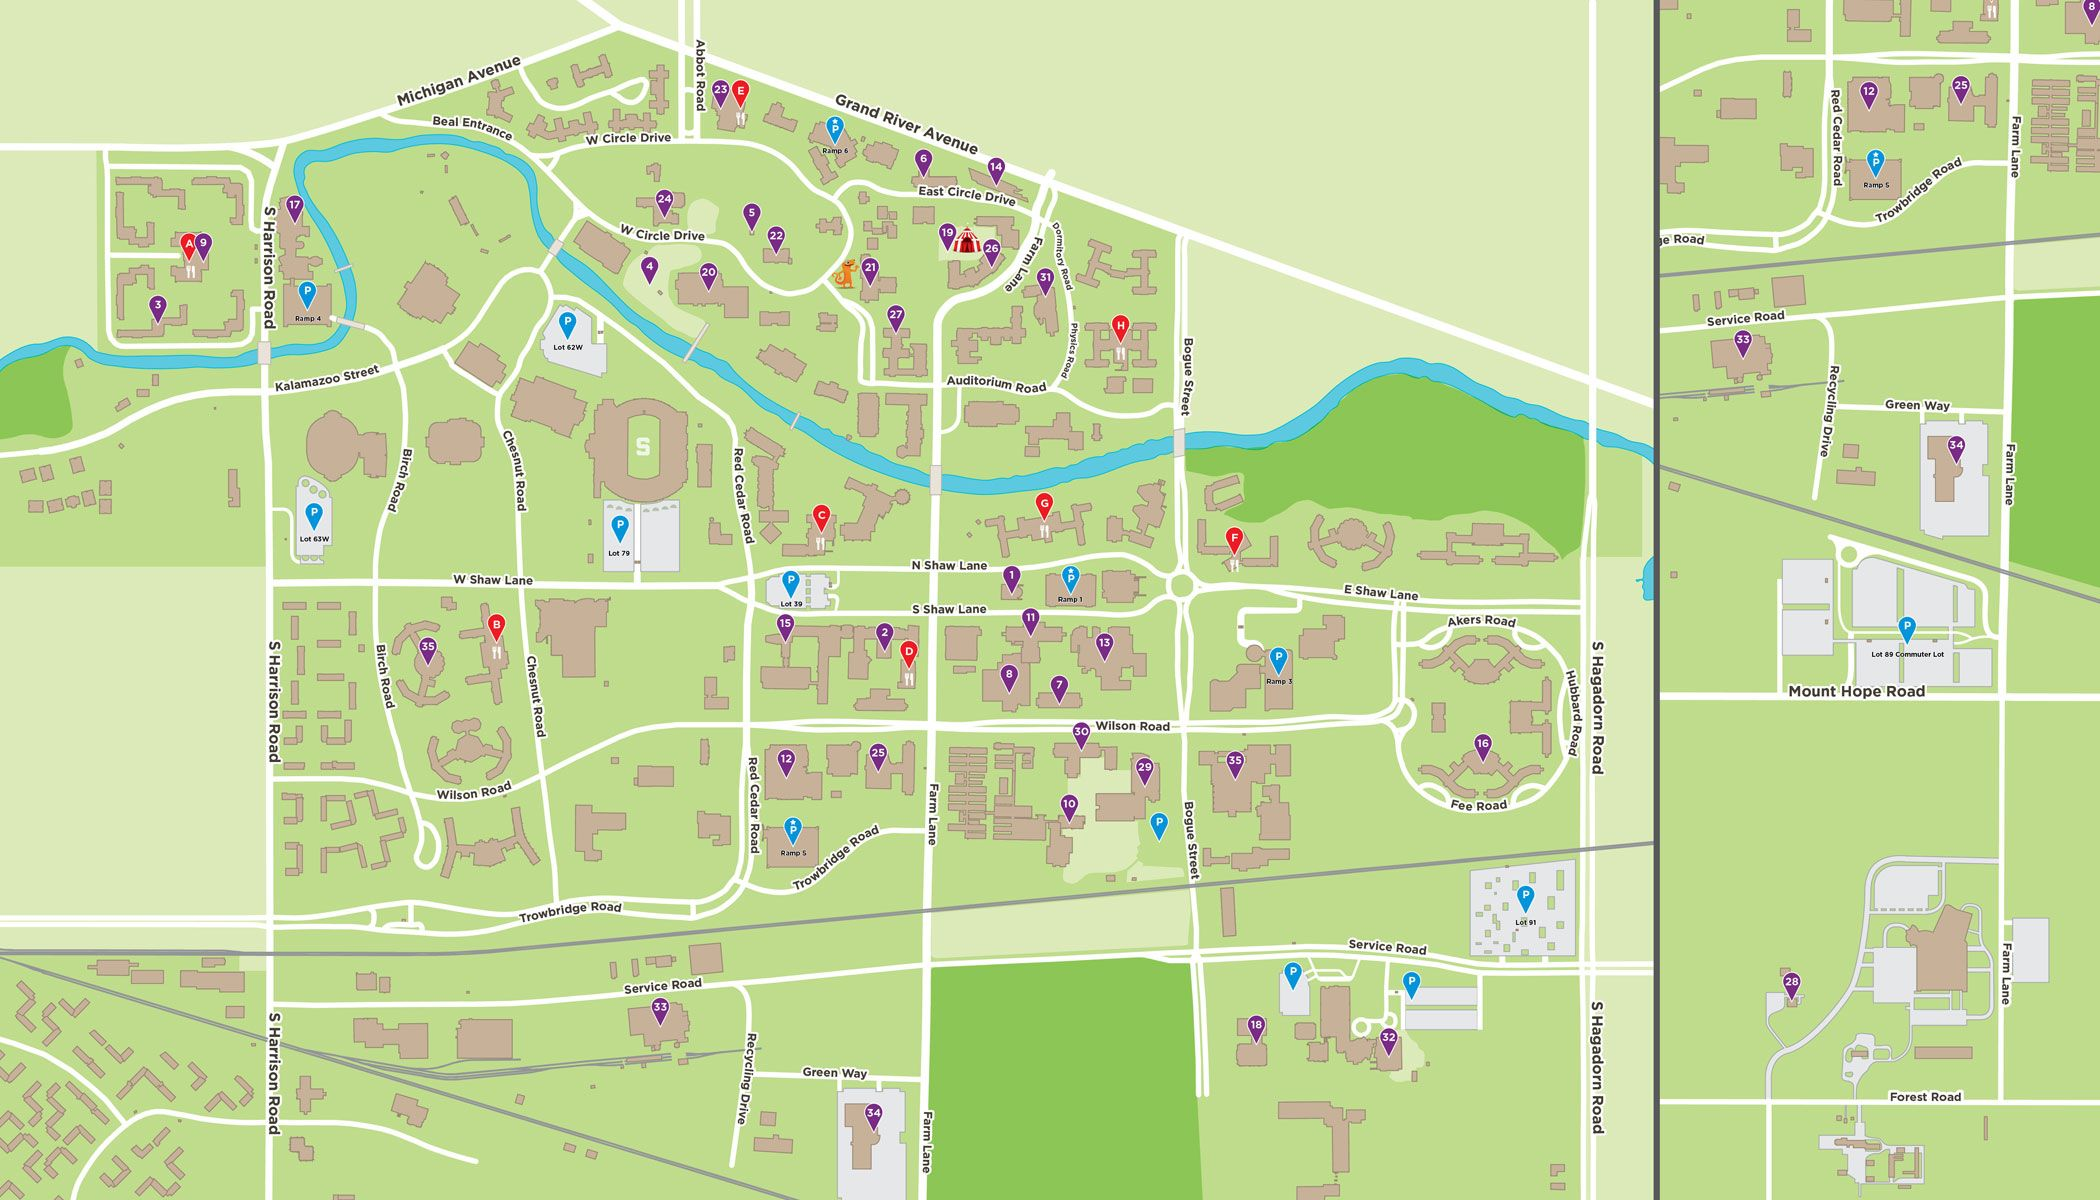 MSU Campus Map On The Banks Of The Red Cedar River Life At MSU - Interactive map msu